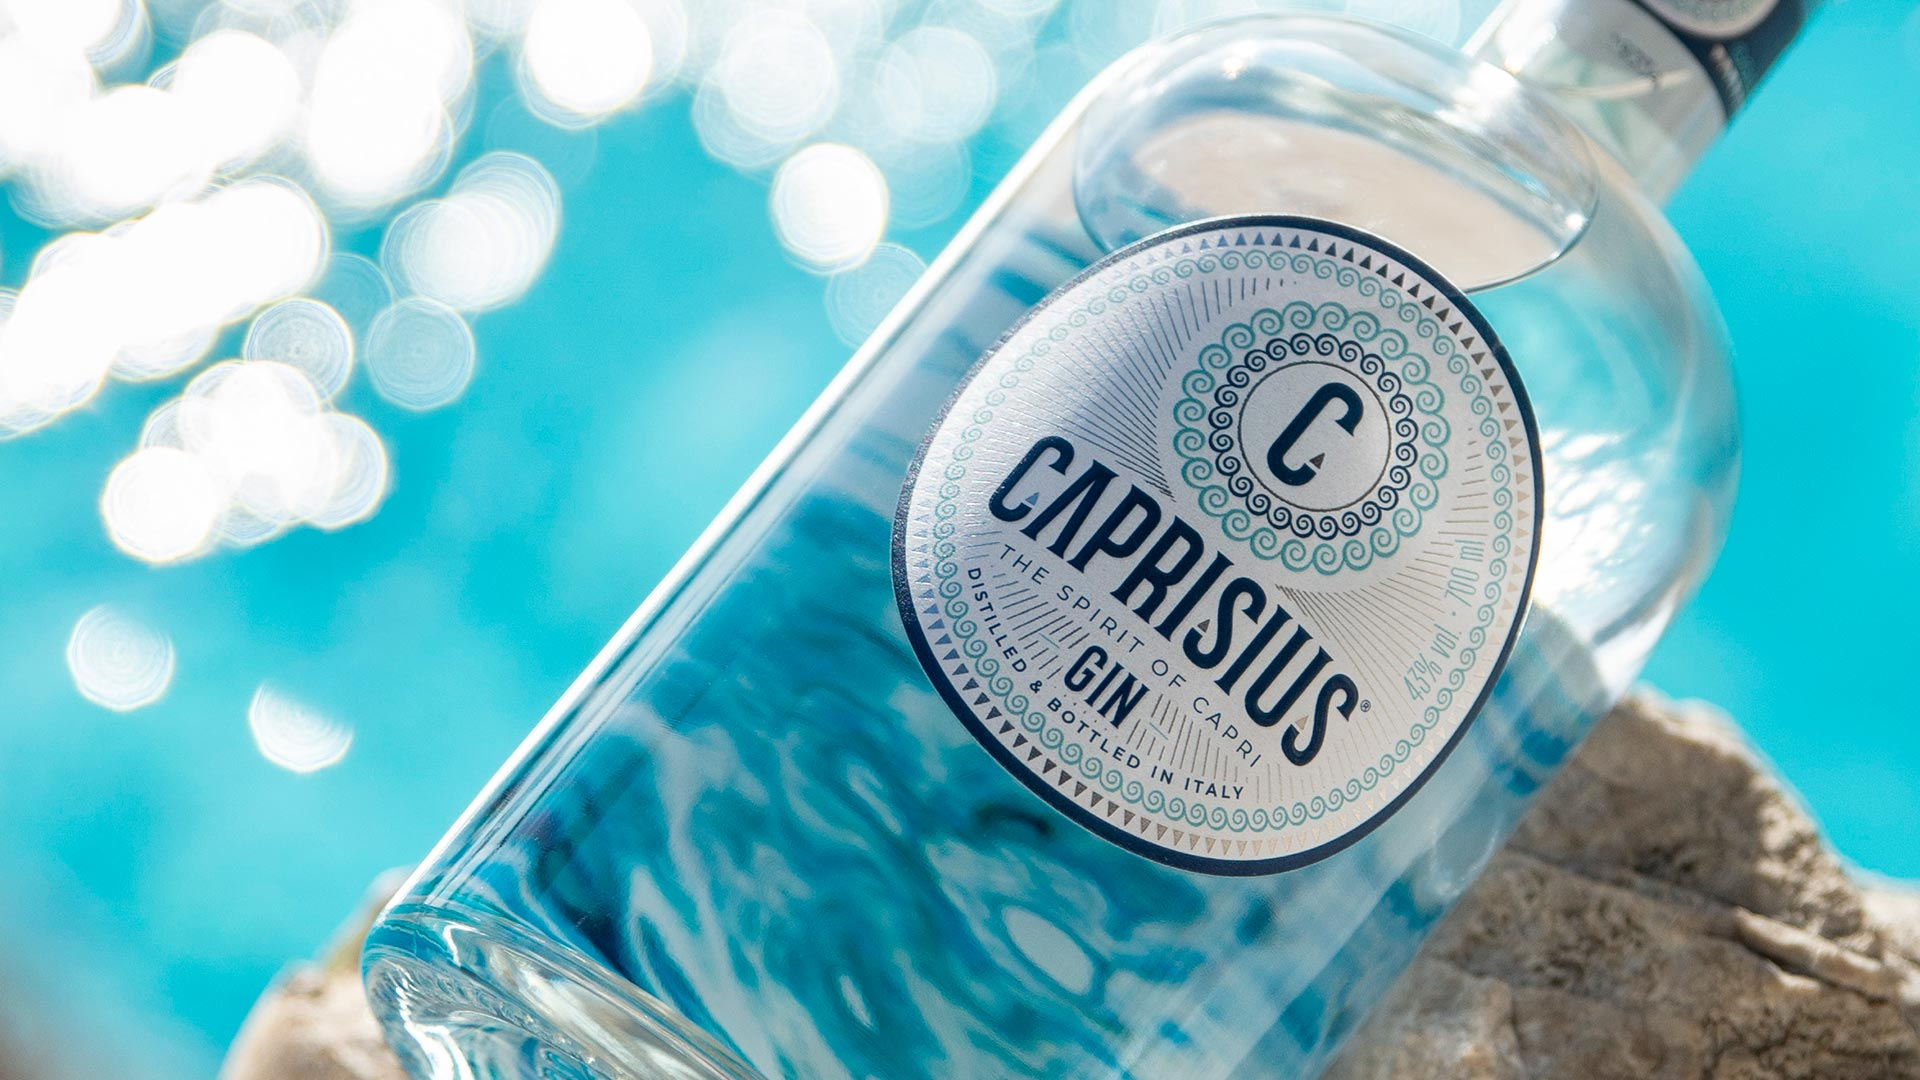 CaprisiusGin1920 5 - Branding & Label Design Caprisius Gin